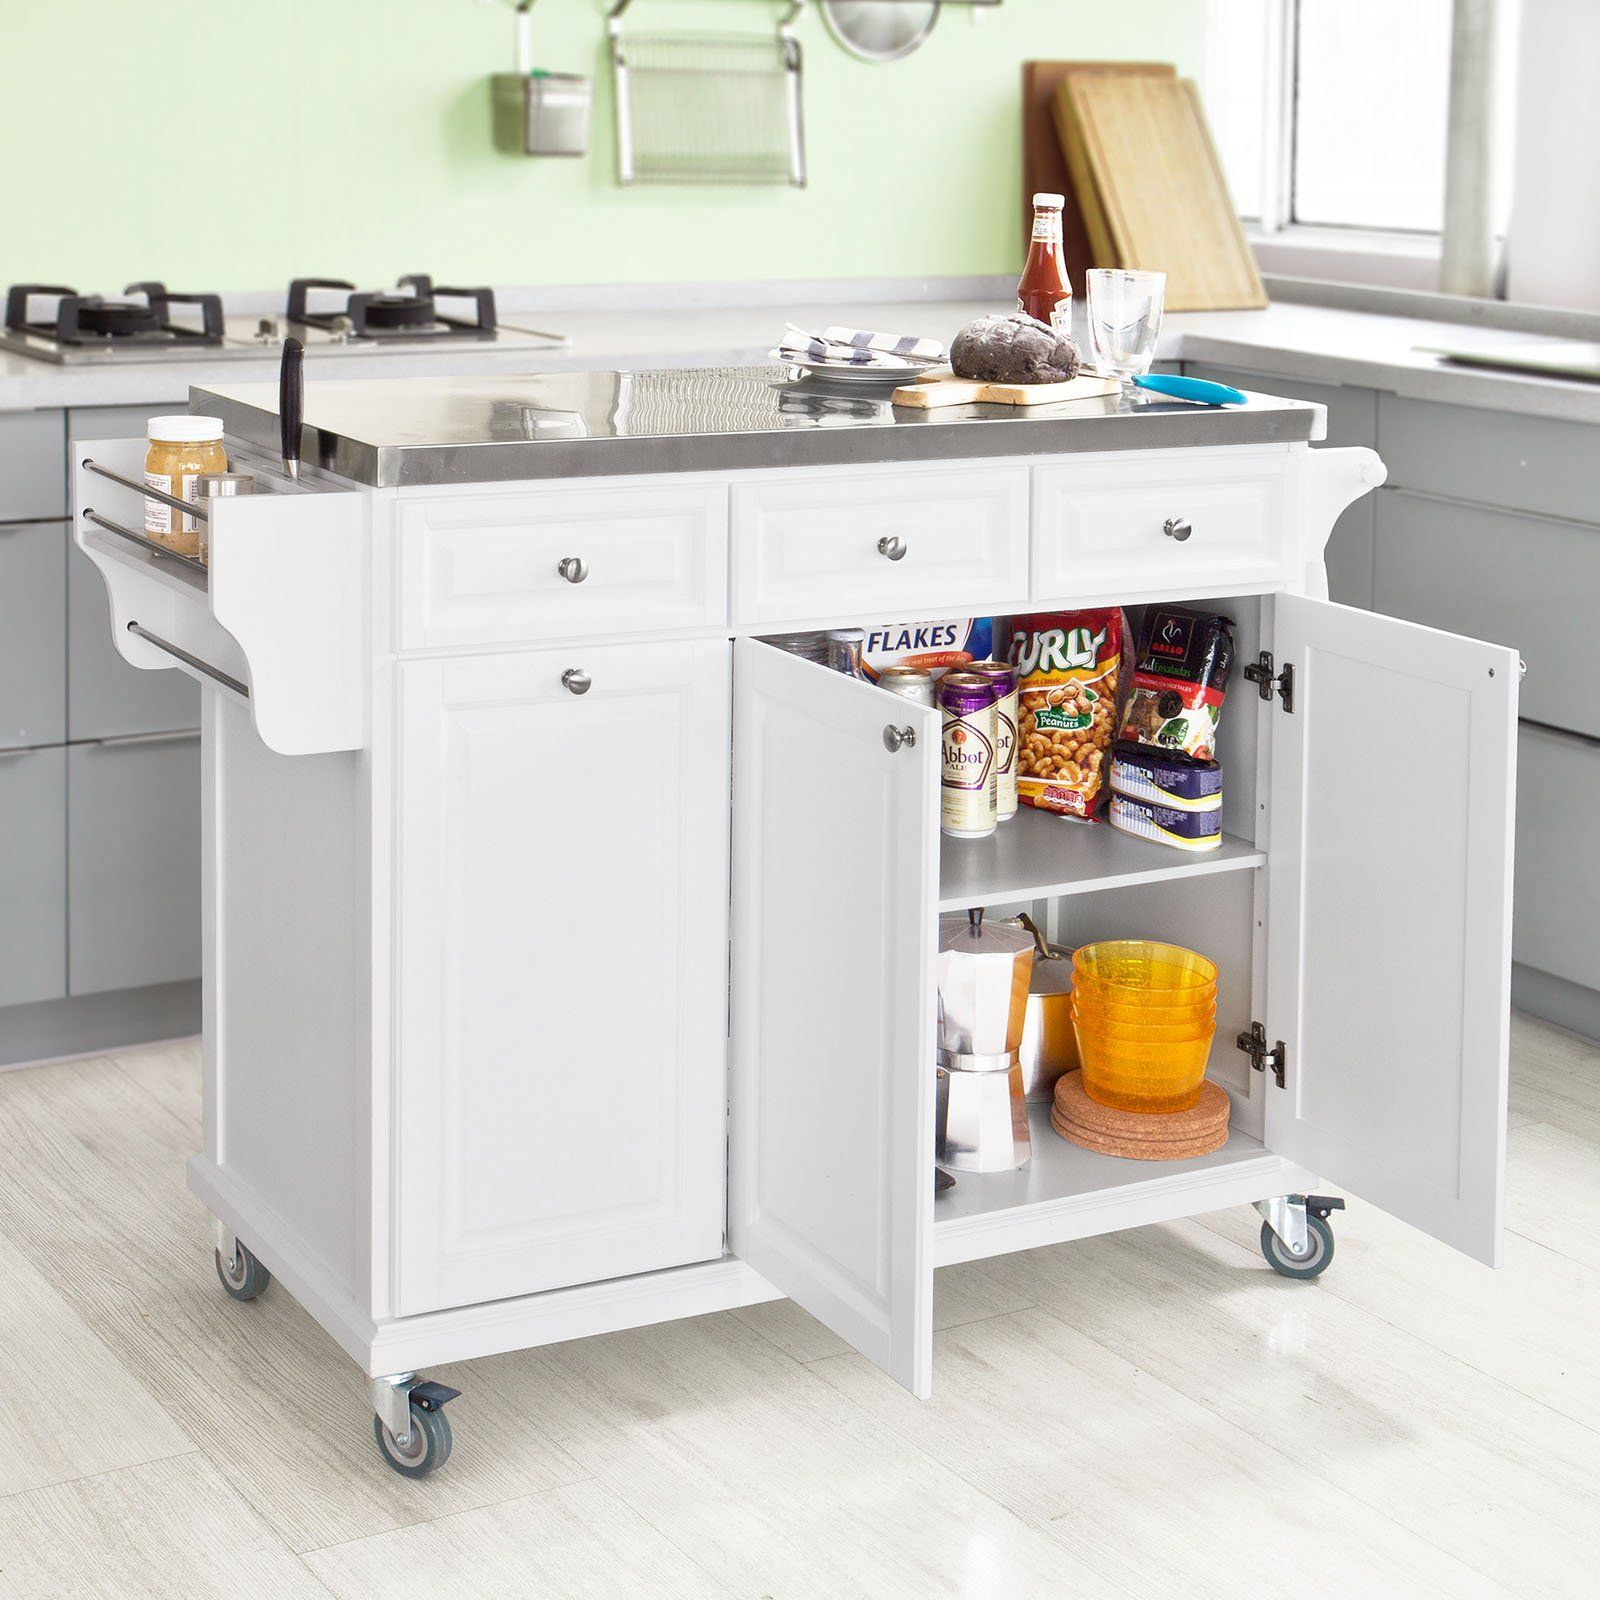 SoBuy White Luxury Kitchen Island Storage Trolley Cart, Kitchen ...